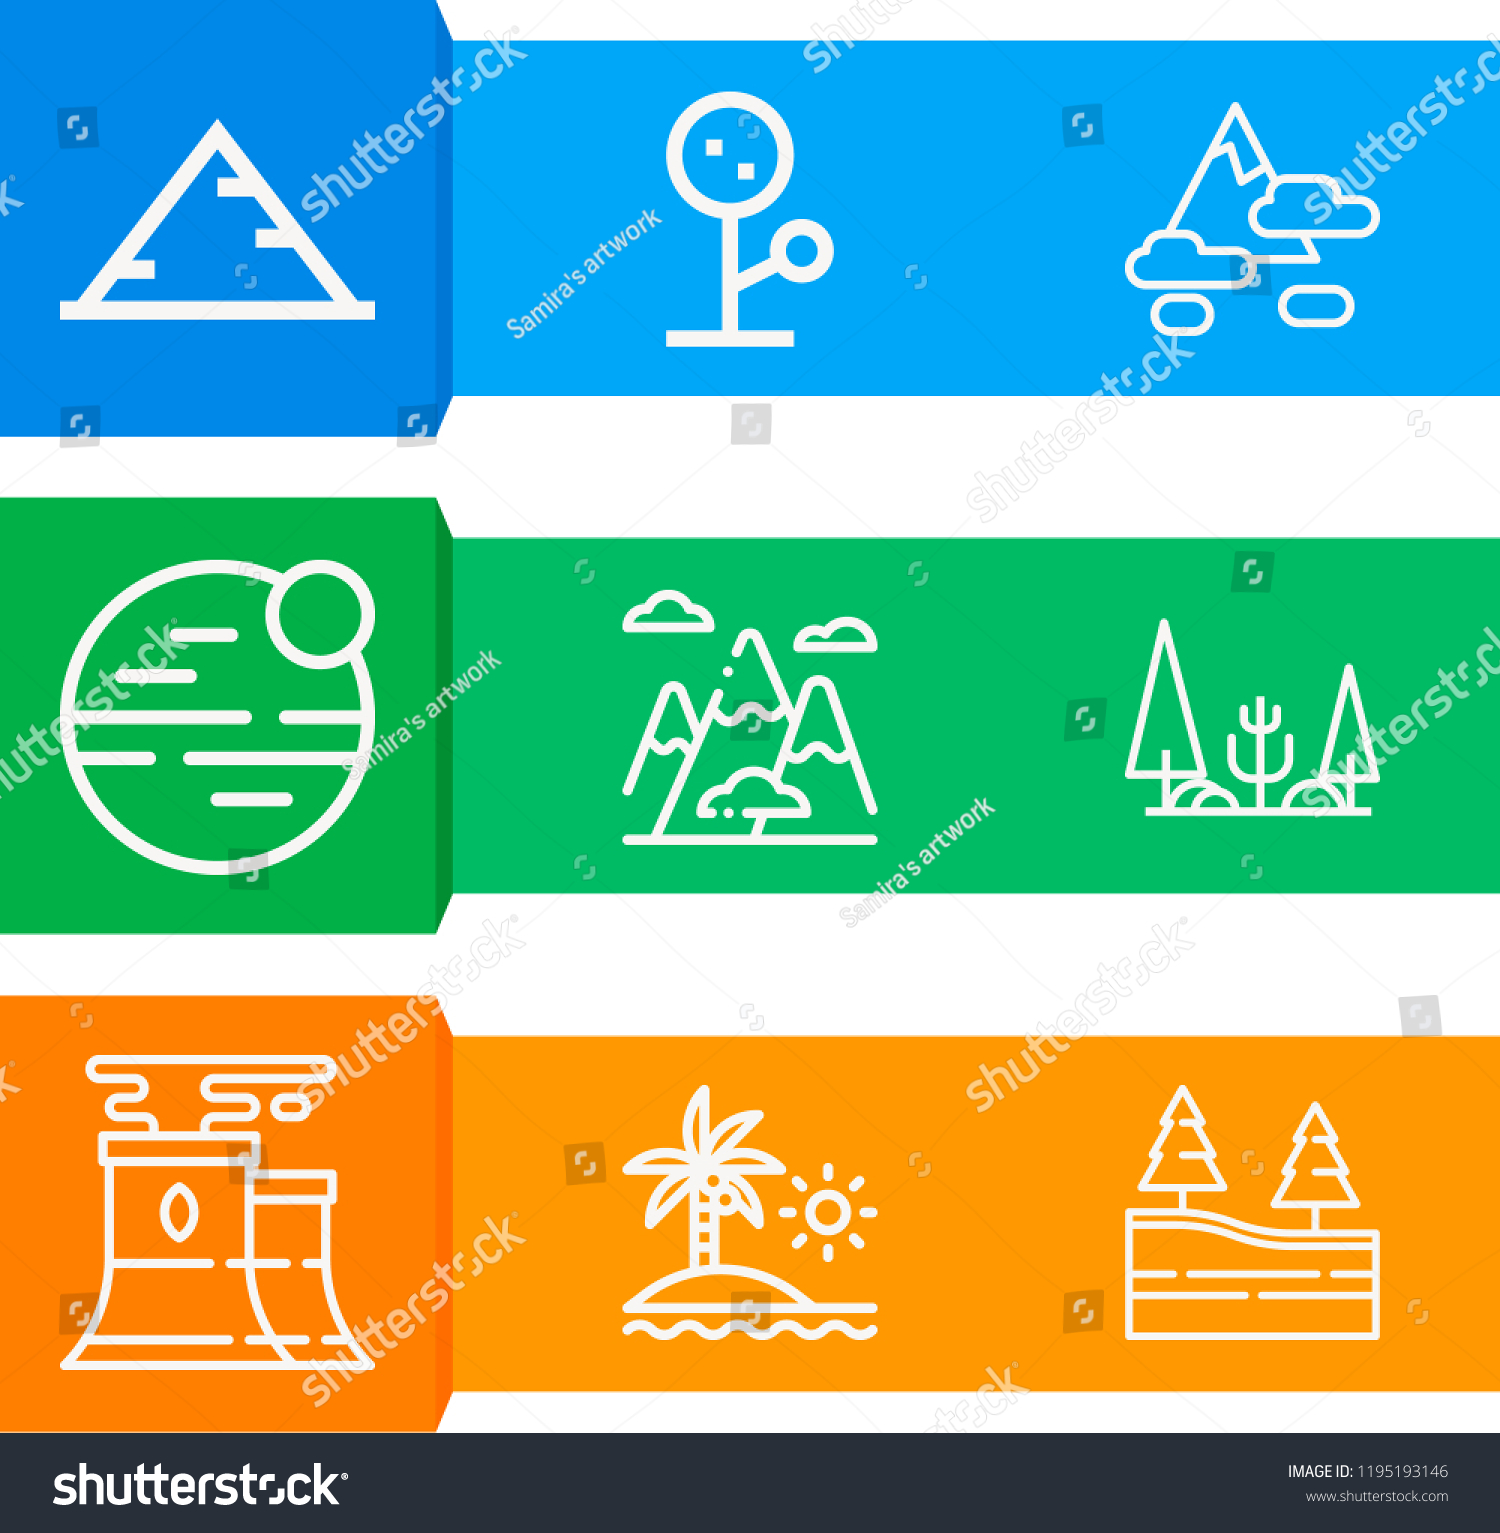 Simple Set 9 Outline Icons On Stock Illustration - Royalty Free